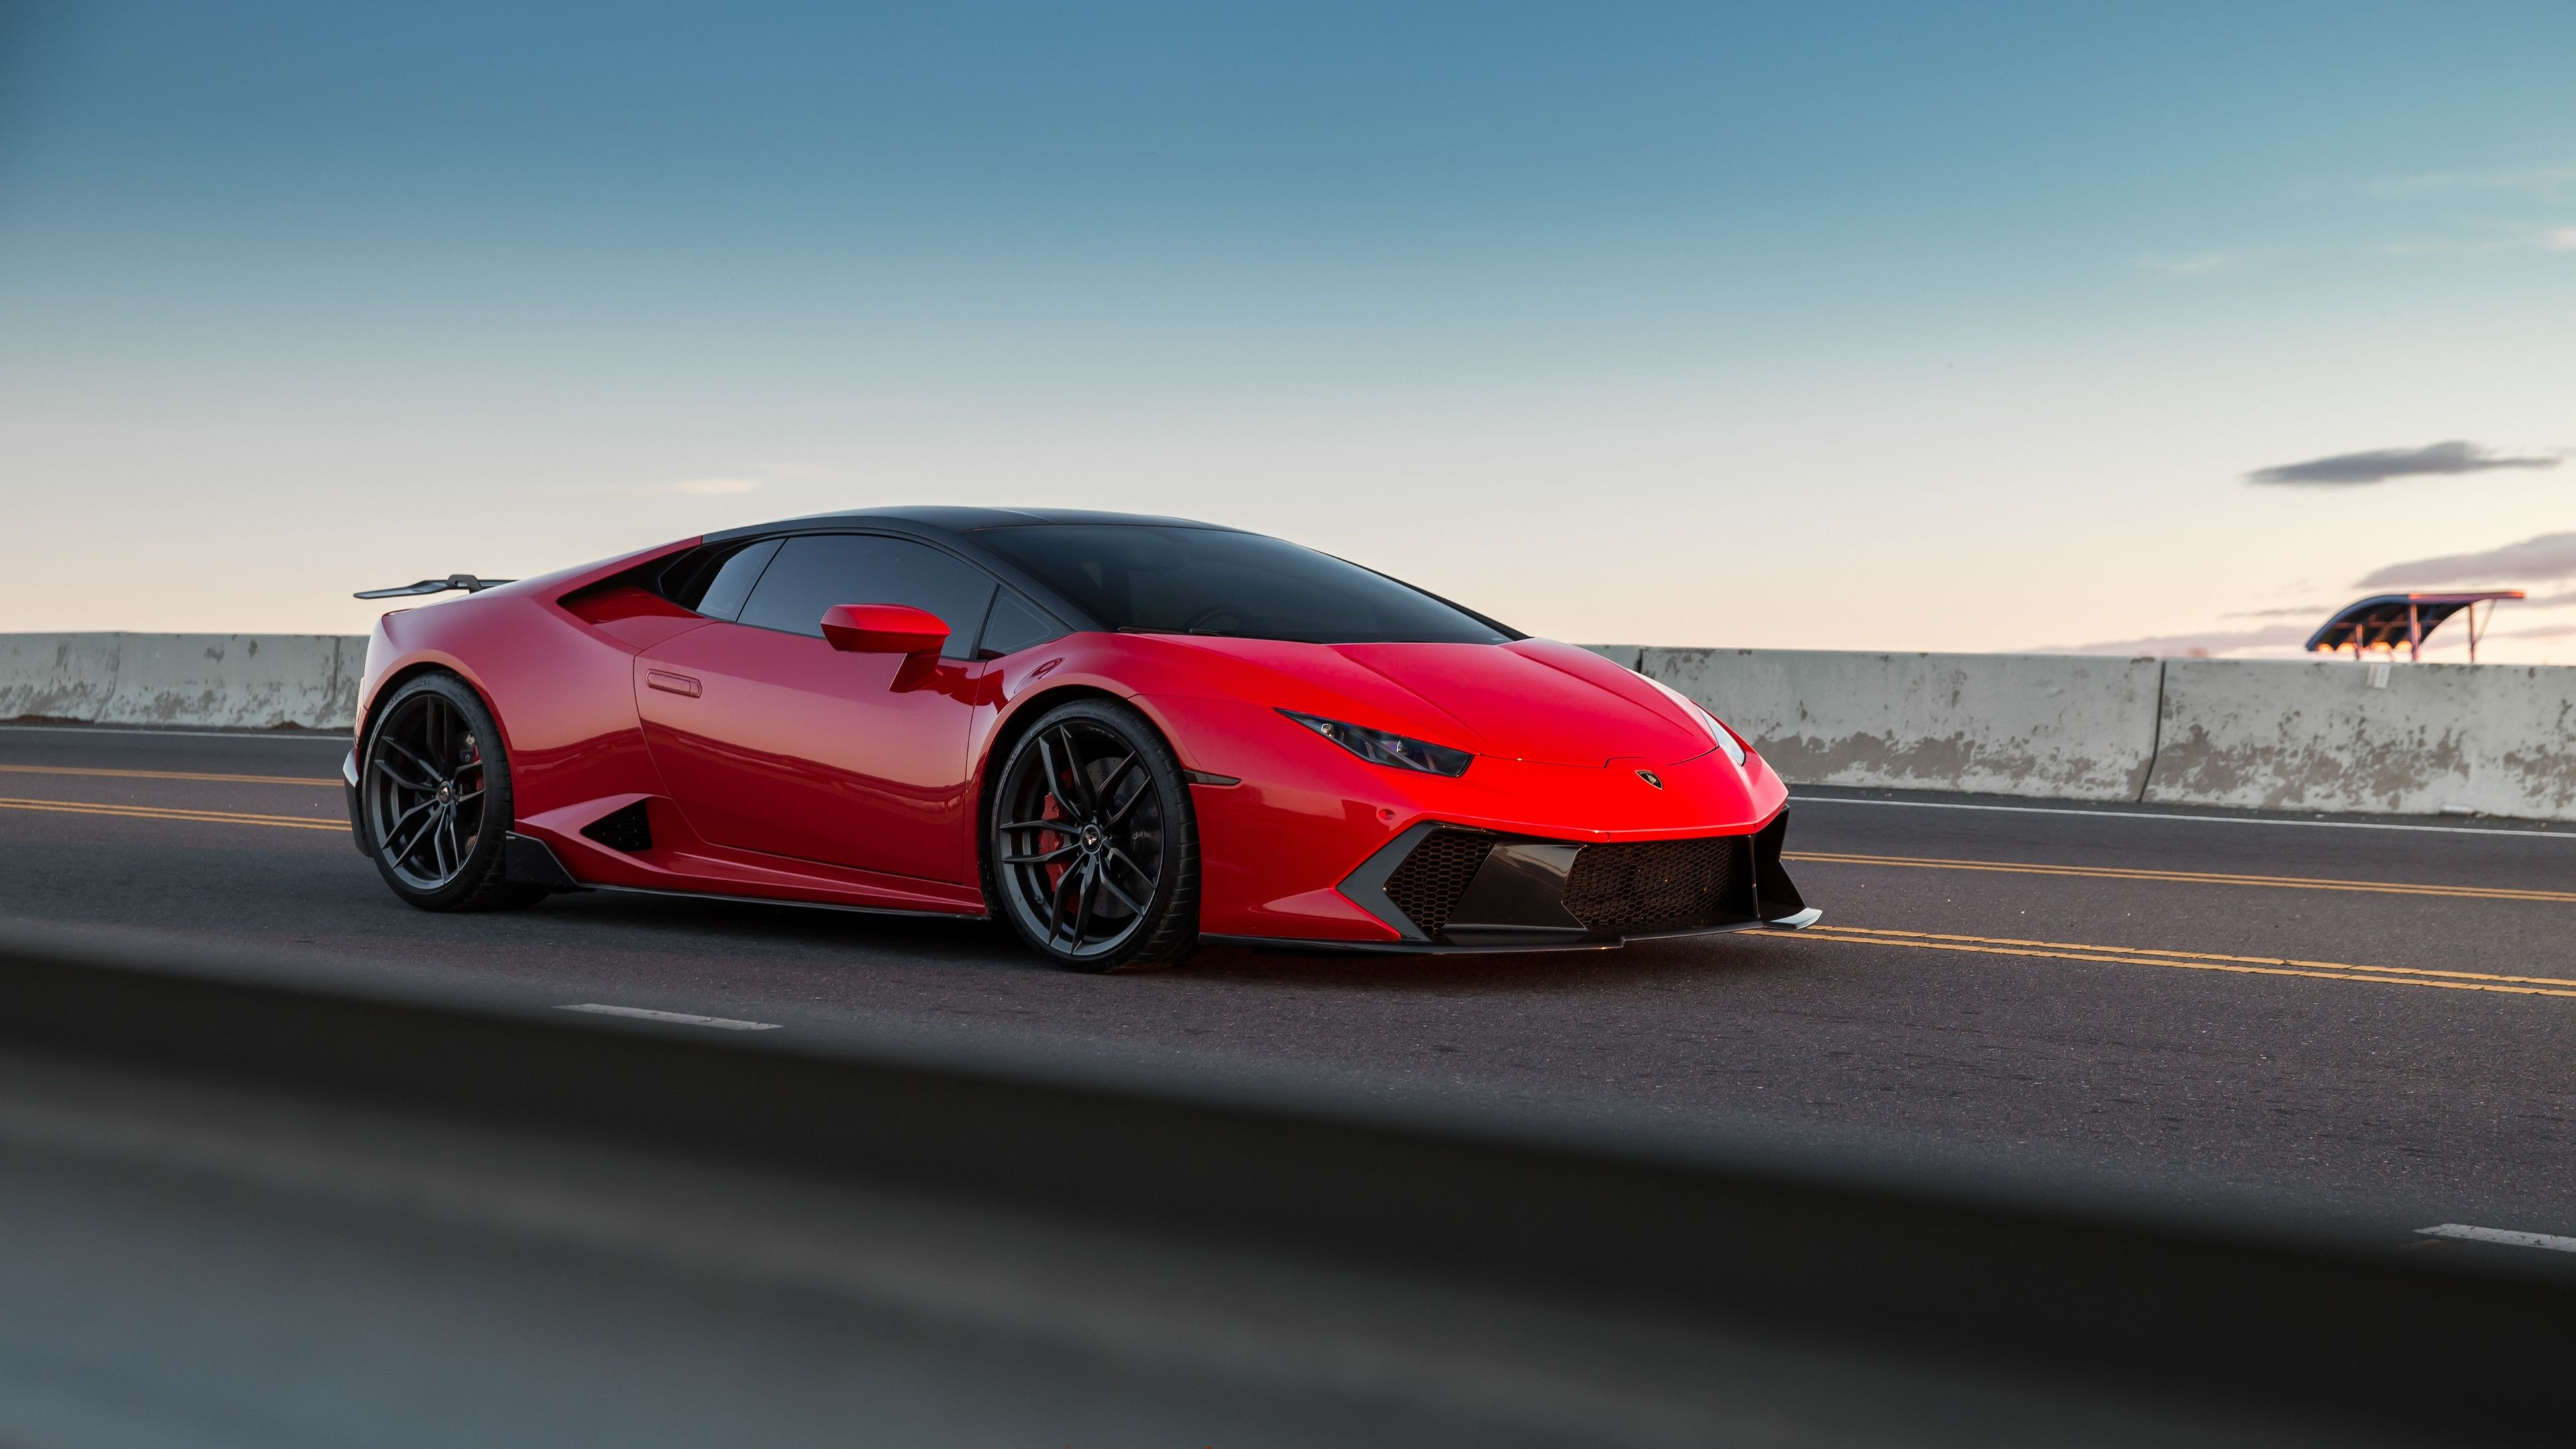 Lamborghini Huracan 5k Lamborghini Wallpapers Lamborghini Huracan Wallpapers Hd Wallpapers Cars Wallpapers 5k Wallpape Lamborghini Huracan Lamborghini Cars